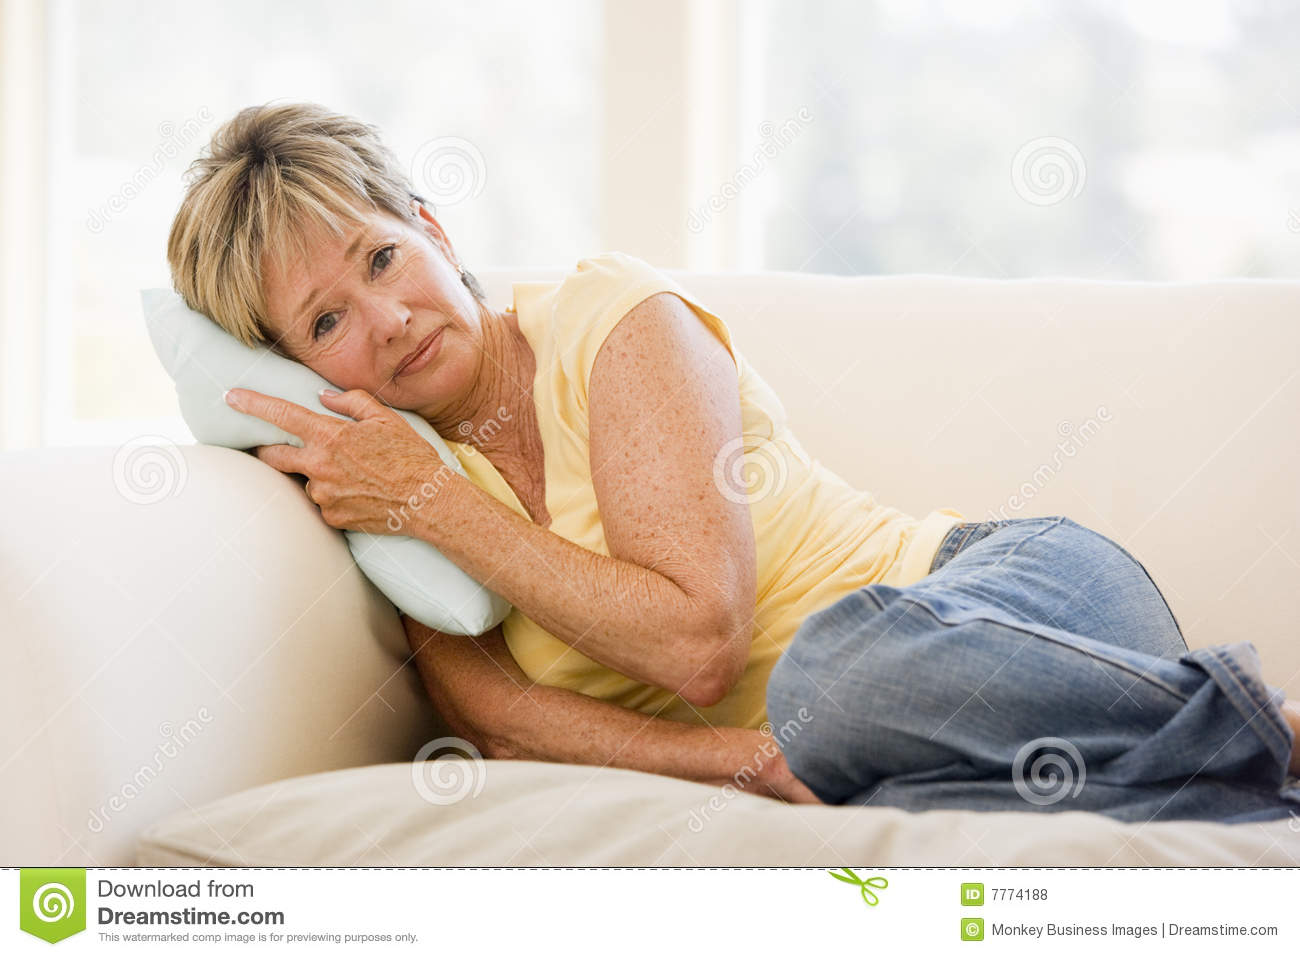 Woman feeling unwell on a sofa